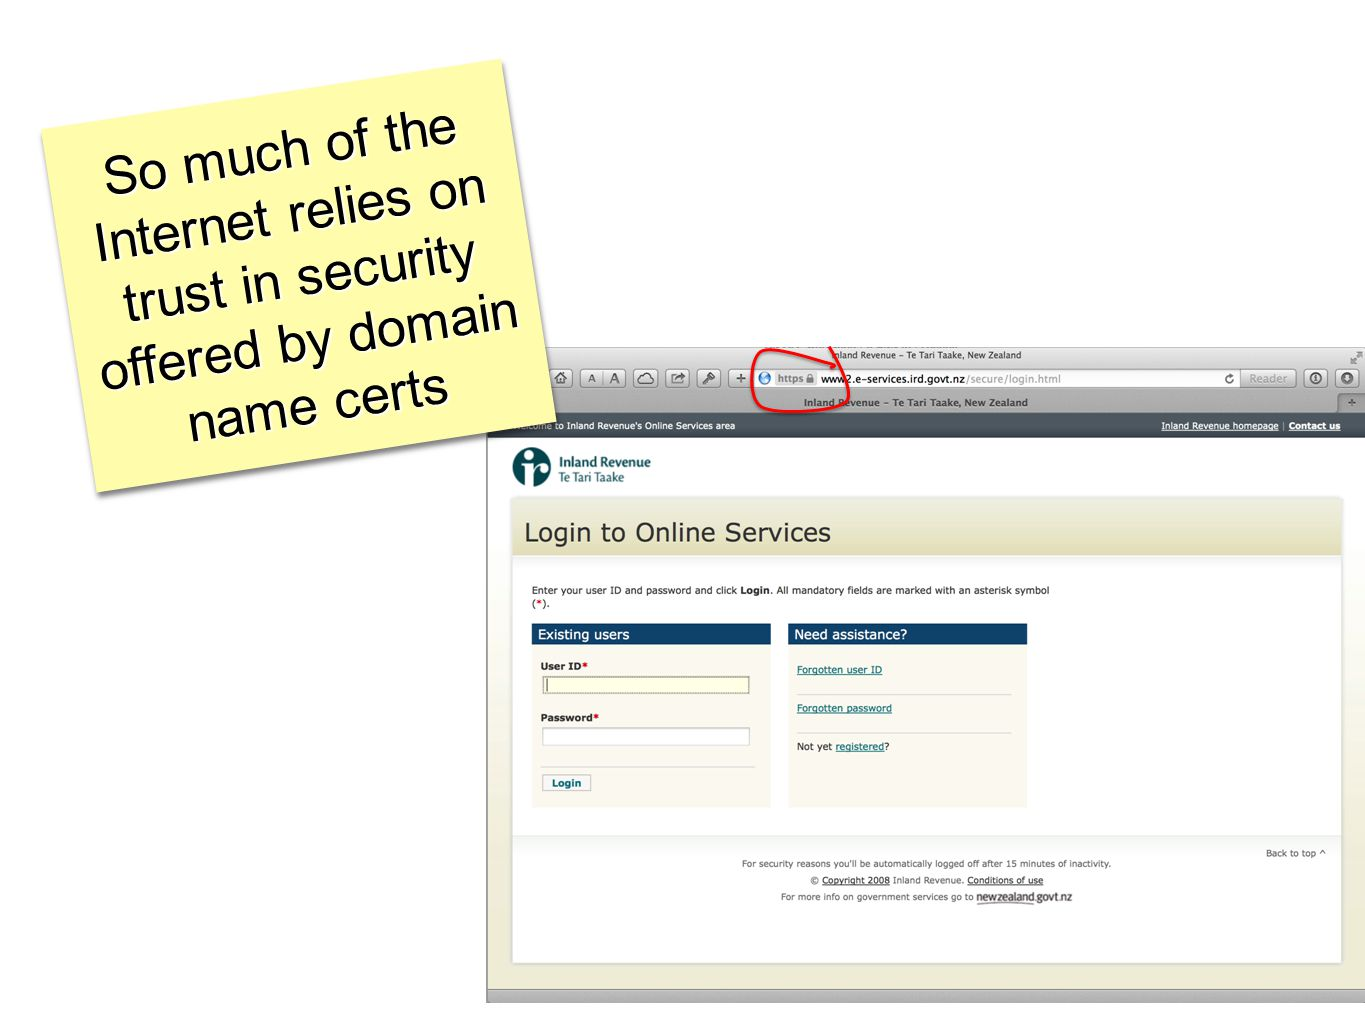 So much of the Internet relies on trust in security offered by domain name certs